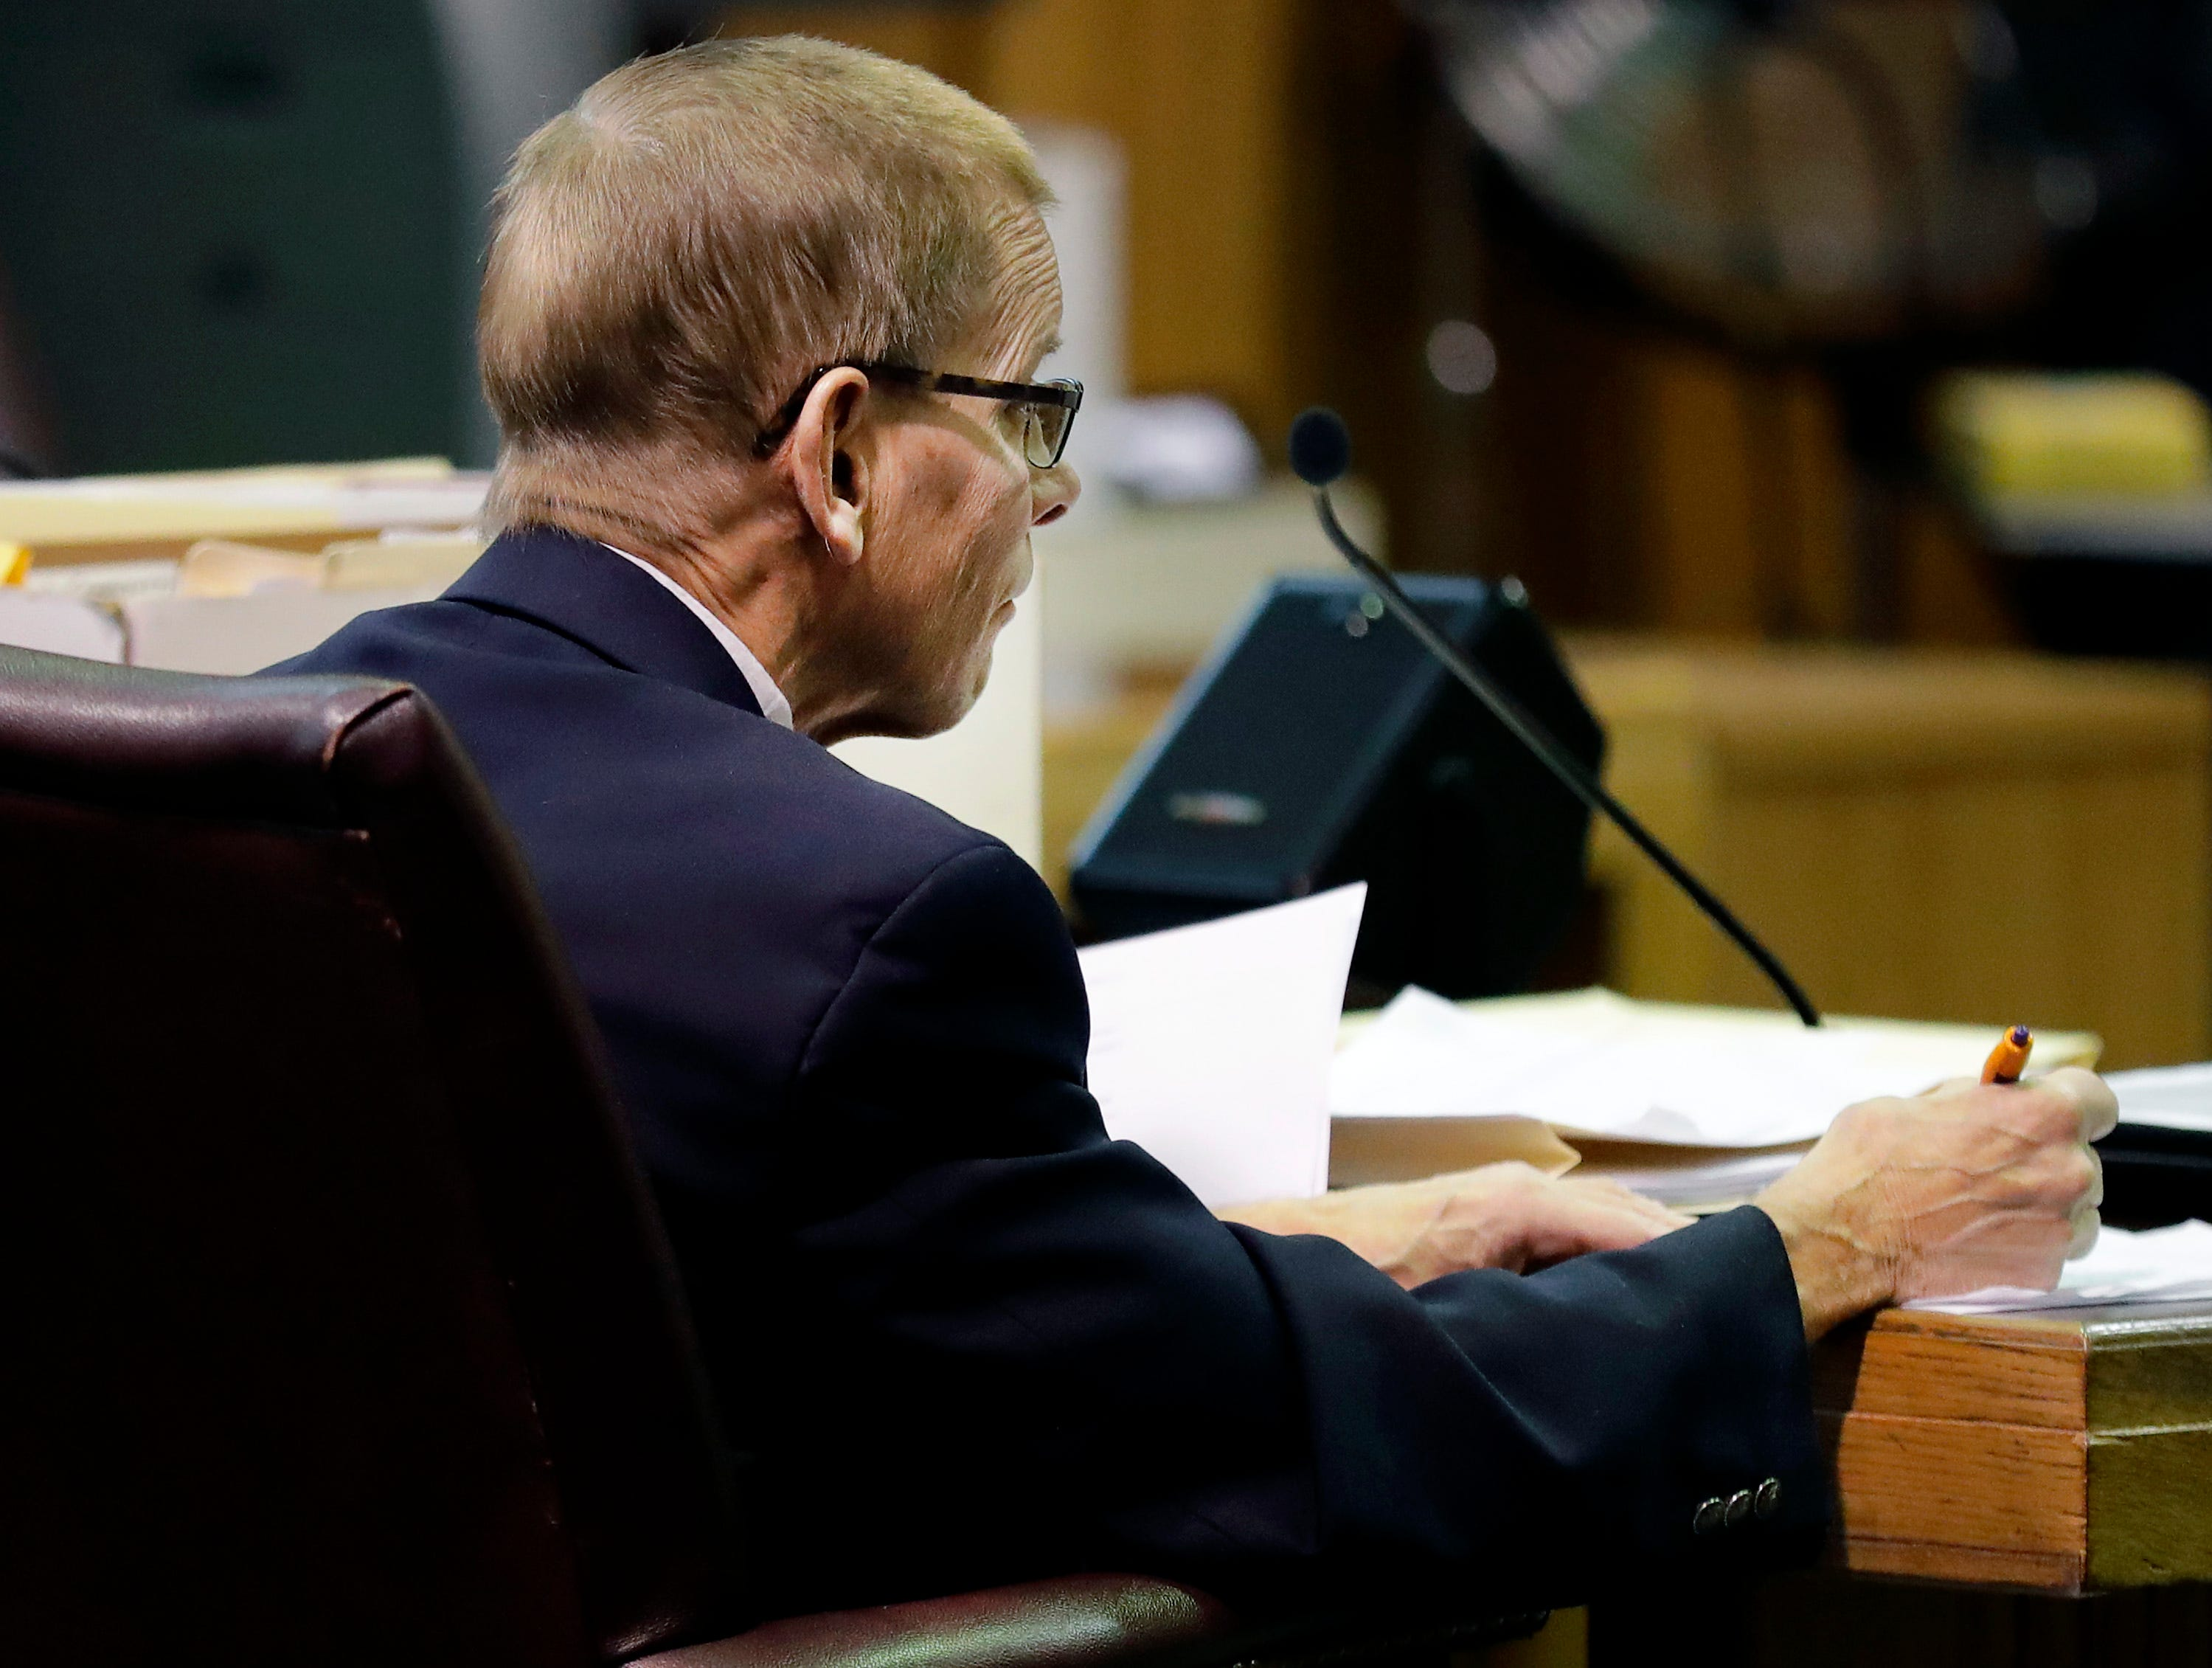 Fox Crossing Municipal Judge Len Kachinsky during a Judicial Commission disciplinary hearing on Thursday, February 7, 2019, at the Winnebago County Courthouse in Oshkosh, Wis.